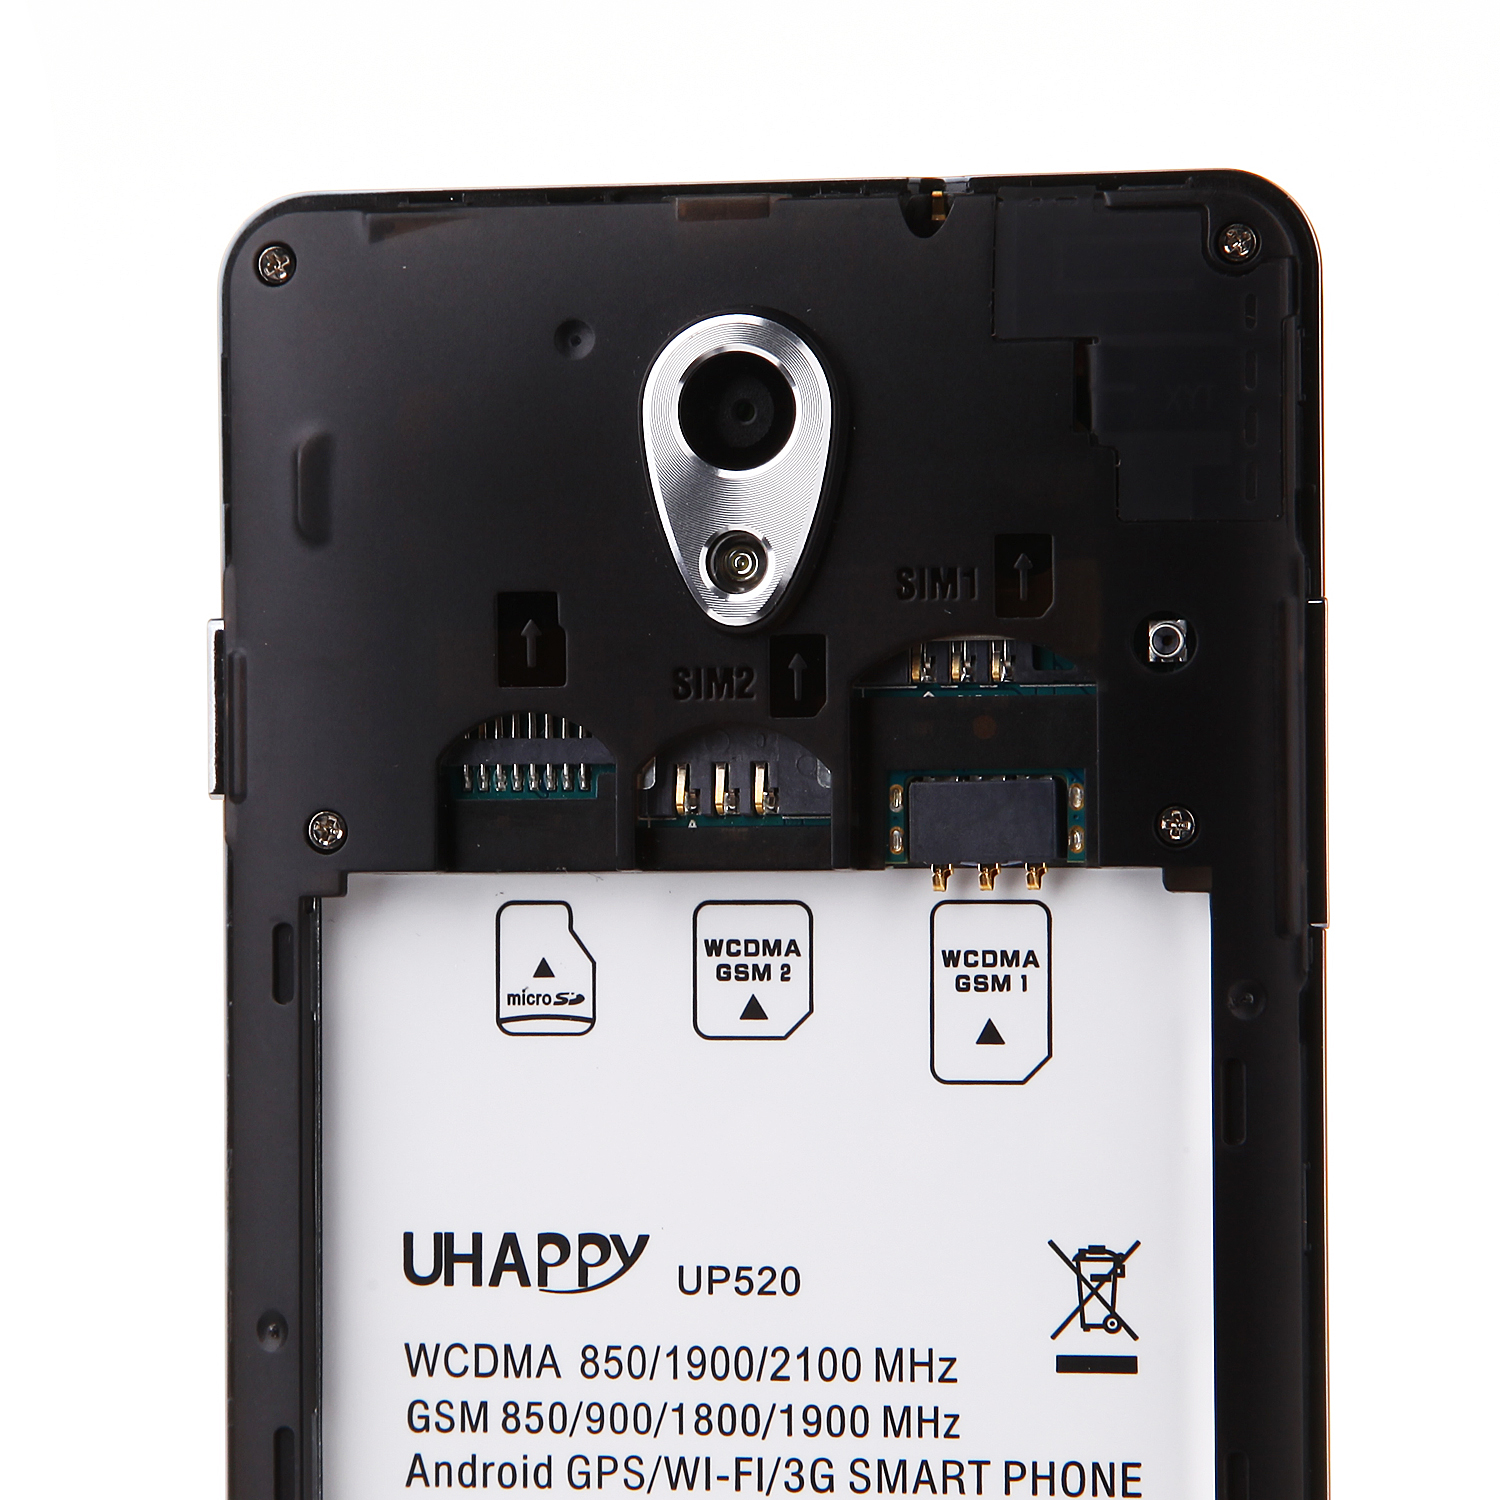 UHAPPY UP520 Smartphone 1GB 8GB Android 4.4 MTK6582 5.0 Inch QHD Screen OTG Black